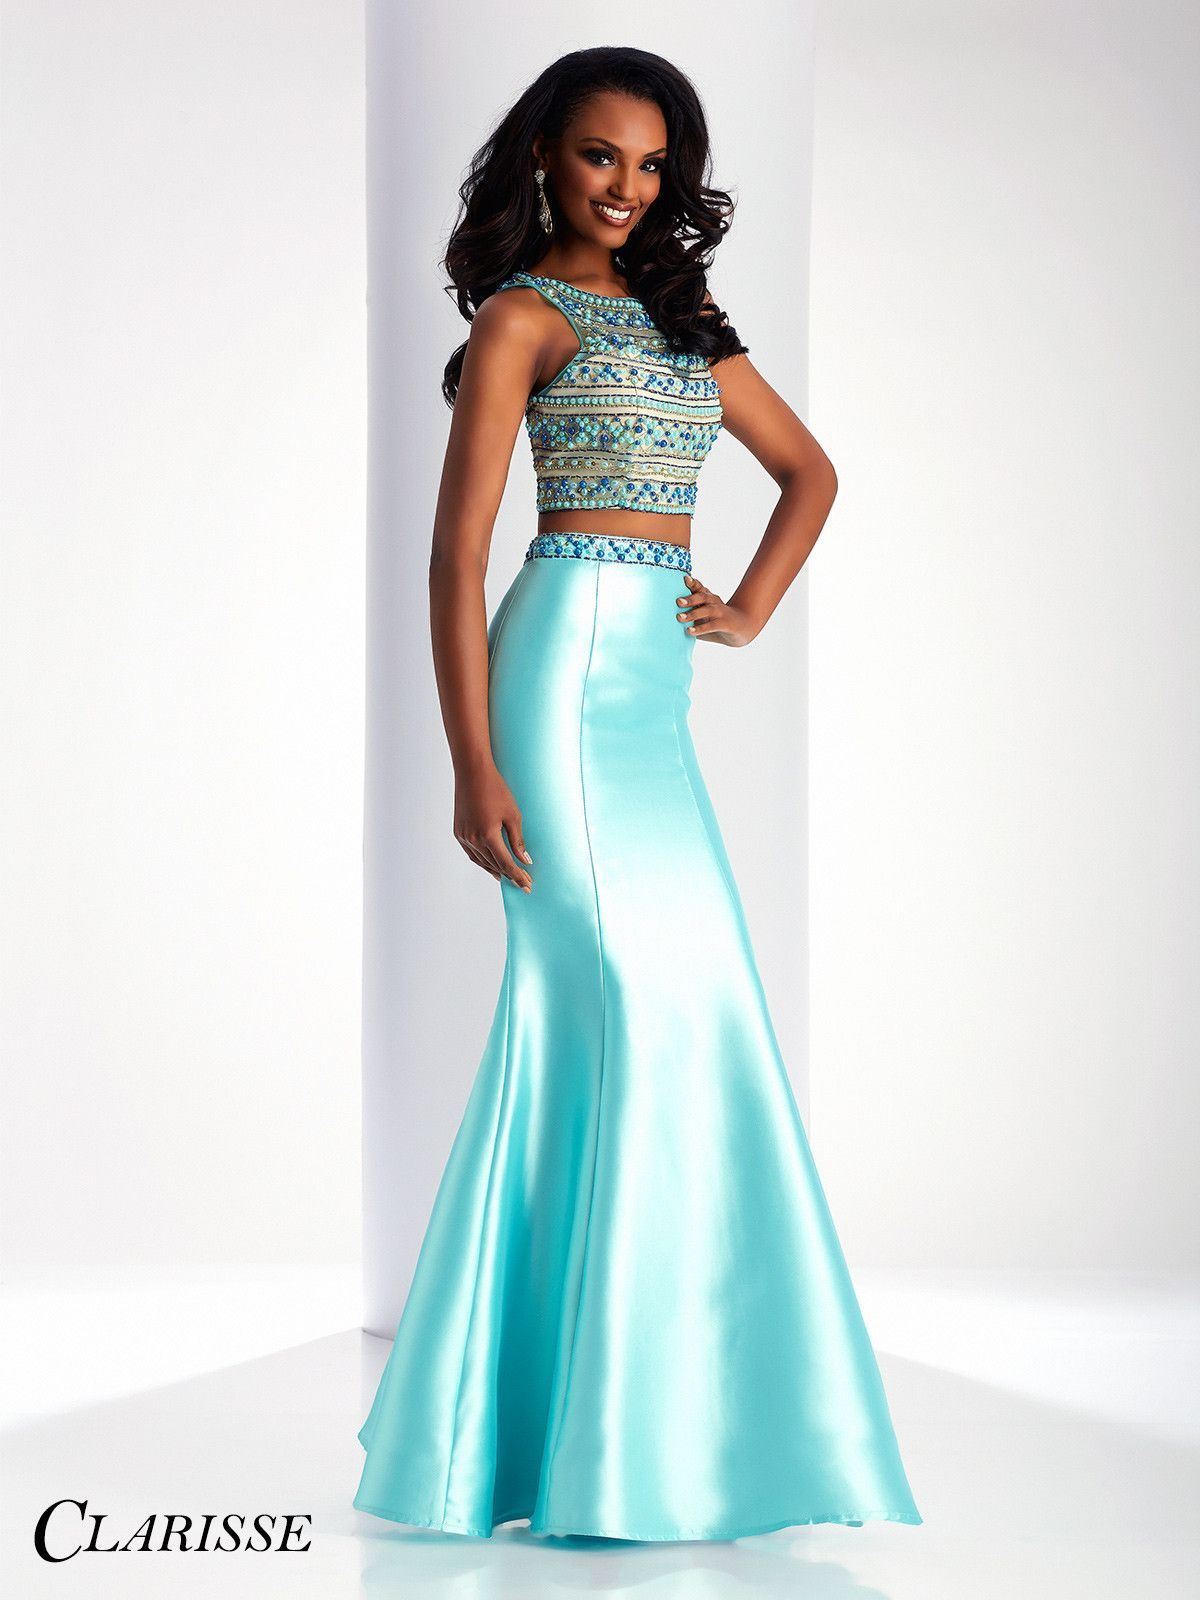 Clarisse Prom 3071 Aqua High Neckline Two-Piece Prom Dress | Prom ...